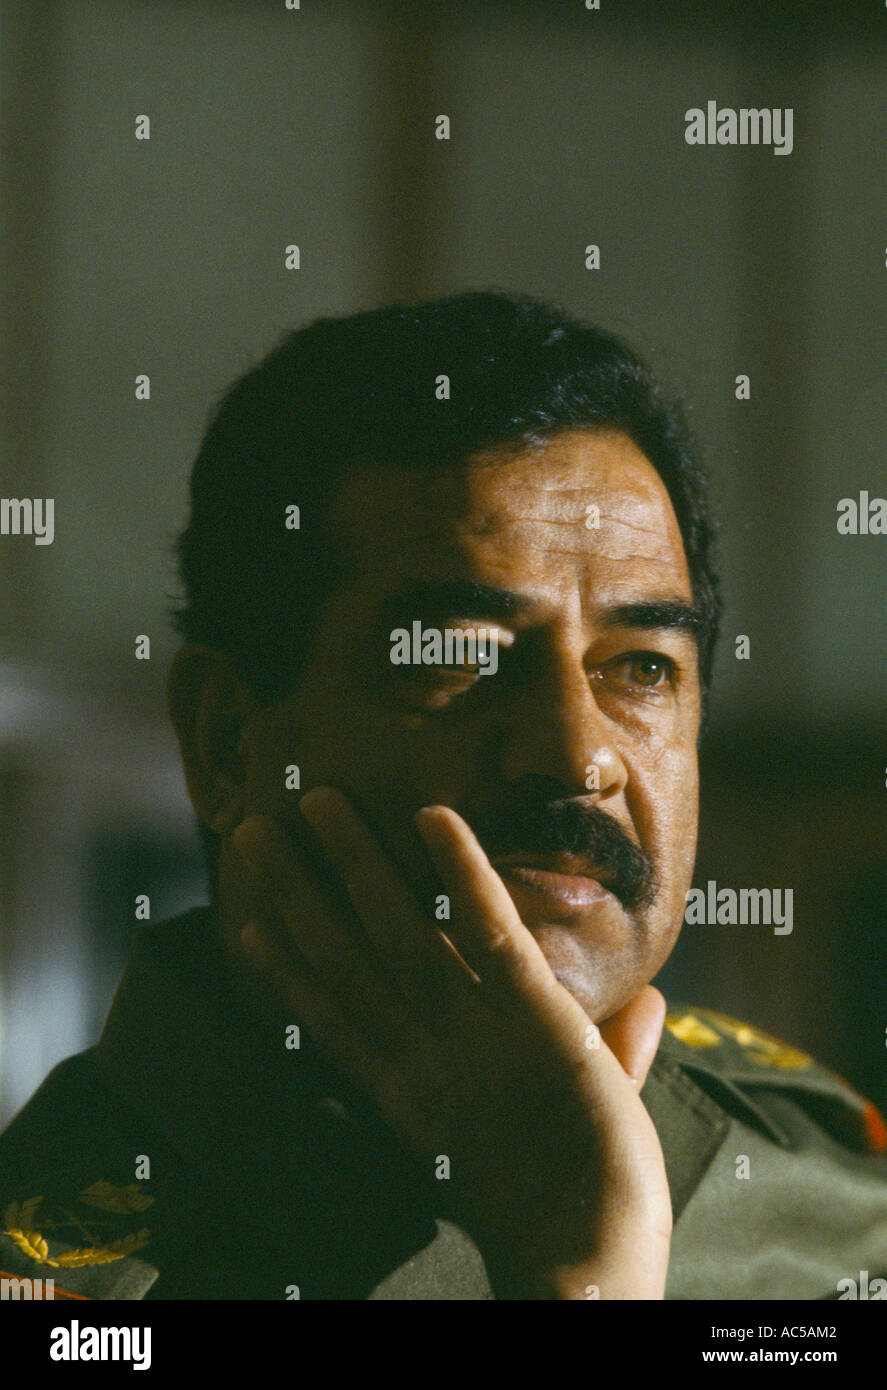 Gulf War - Wikipedia Saddam hussein photo gallery image